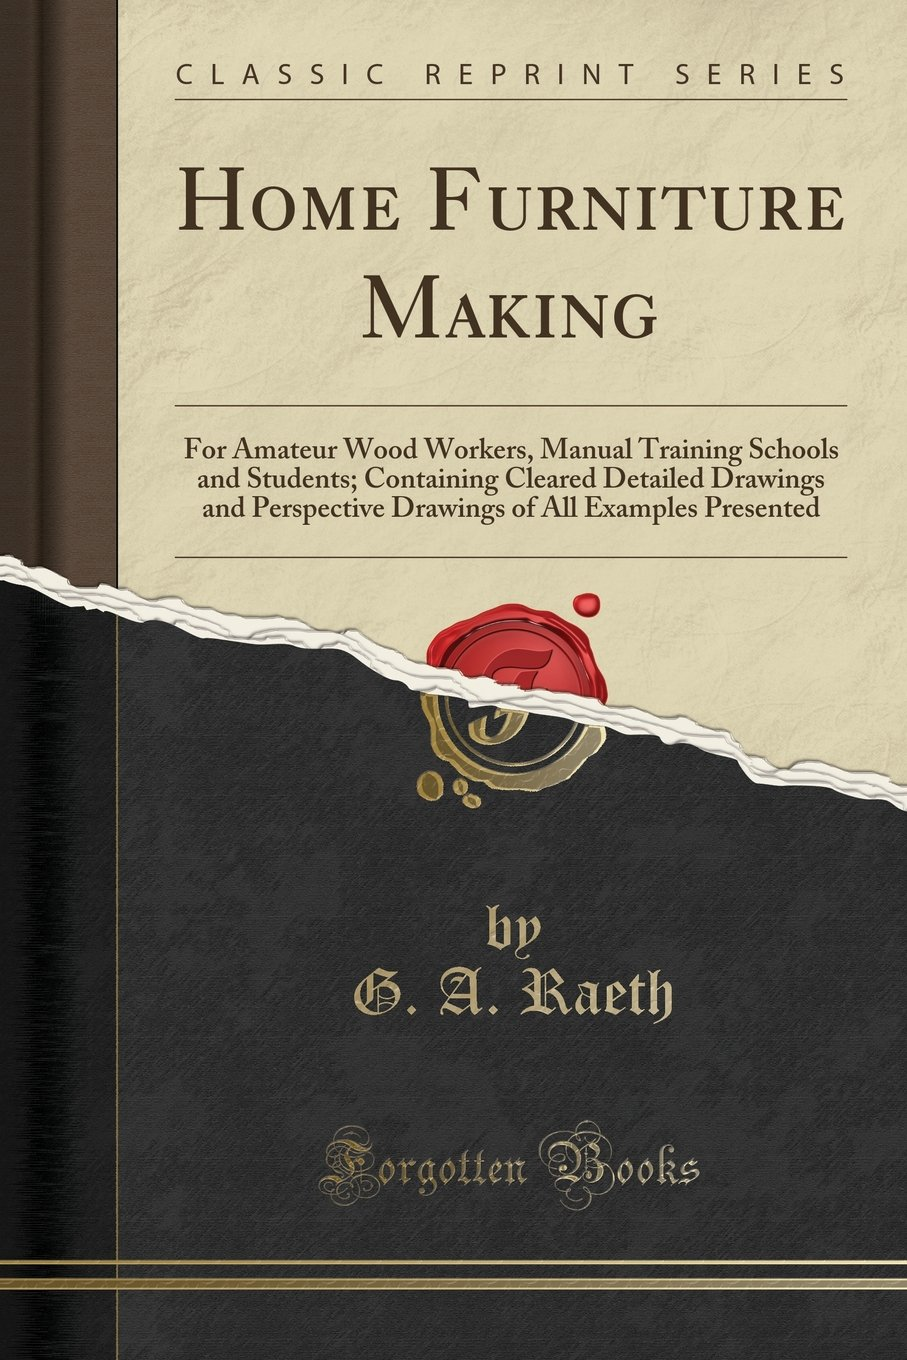 Home Furniture Making: For Amateur Wood Workers, Manual Training Schools and Students; Containing Cleared Detailed Drawings and Perspective Drawings of All Examples Presented (Classic Reprint)